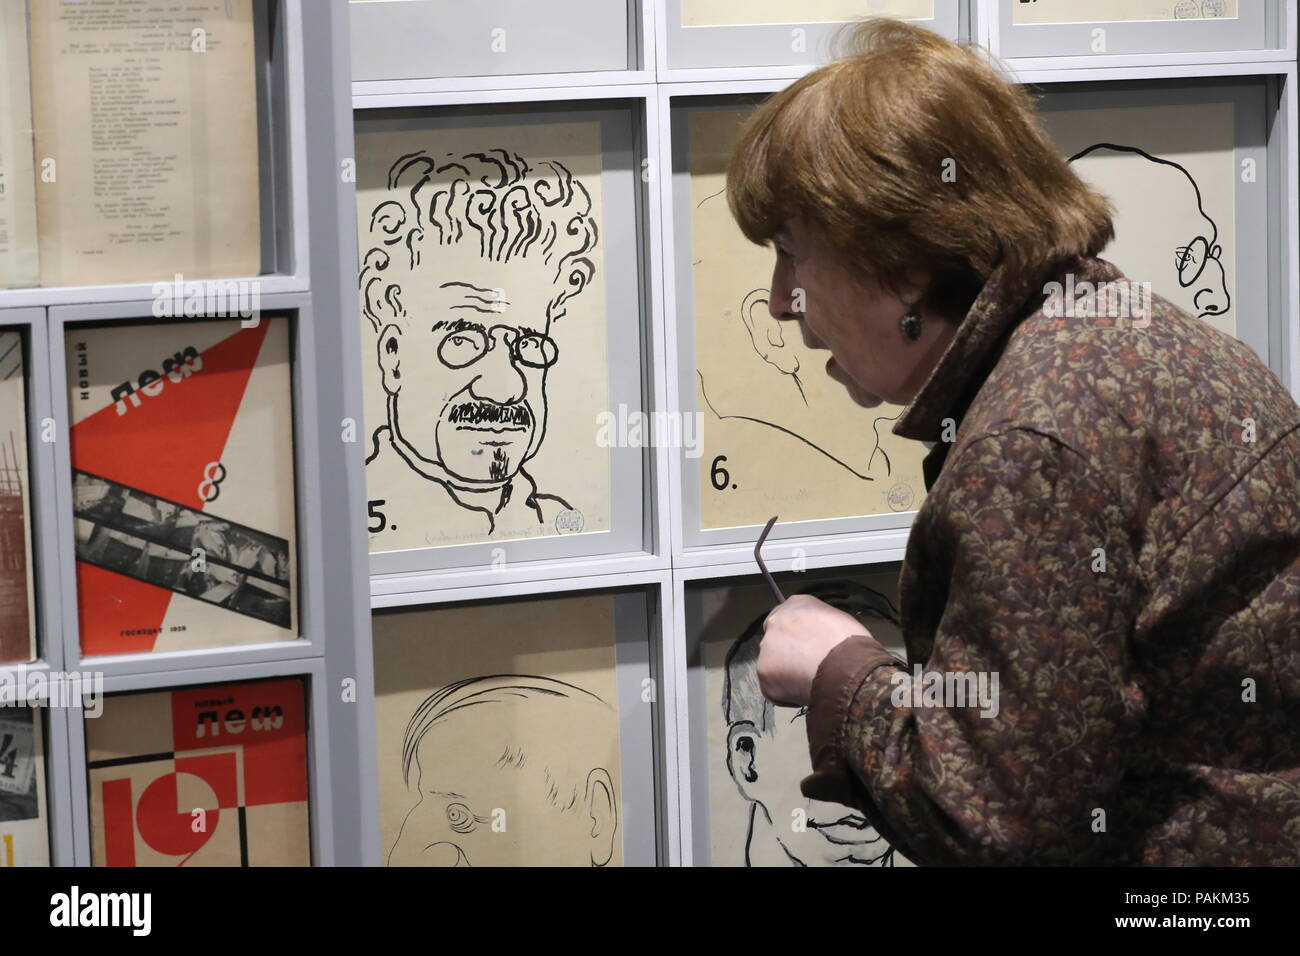 MOSCOW, RUSSIA - JULY 24, 2018: A visitor views early 1920s mocking portraits of LEF [Left Front of Arts] members on display at an exhibition titled 'Vladimir Mayakovsky - There and Over Here' and held at Moscow's Vladimir Dahl Russian State Literary Museum to mark Russian poet Vladimir Mayakovsky's 125th birthday. Sergei Savostyanov/TASS - Stock Image